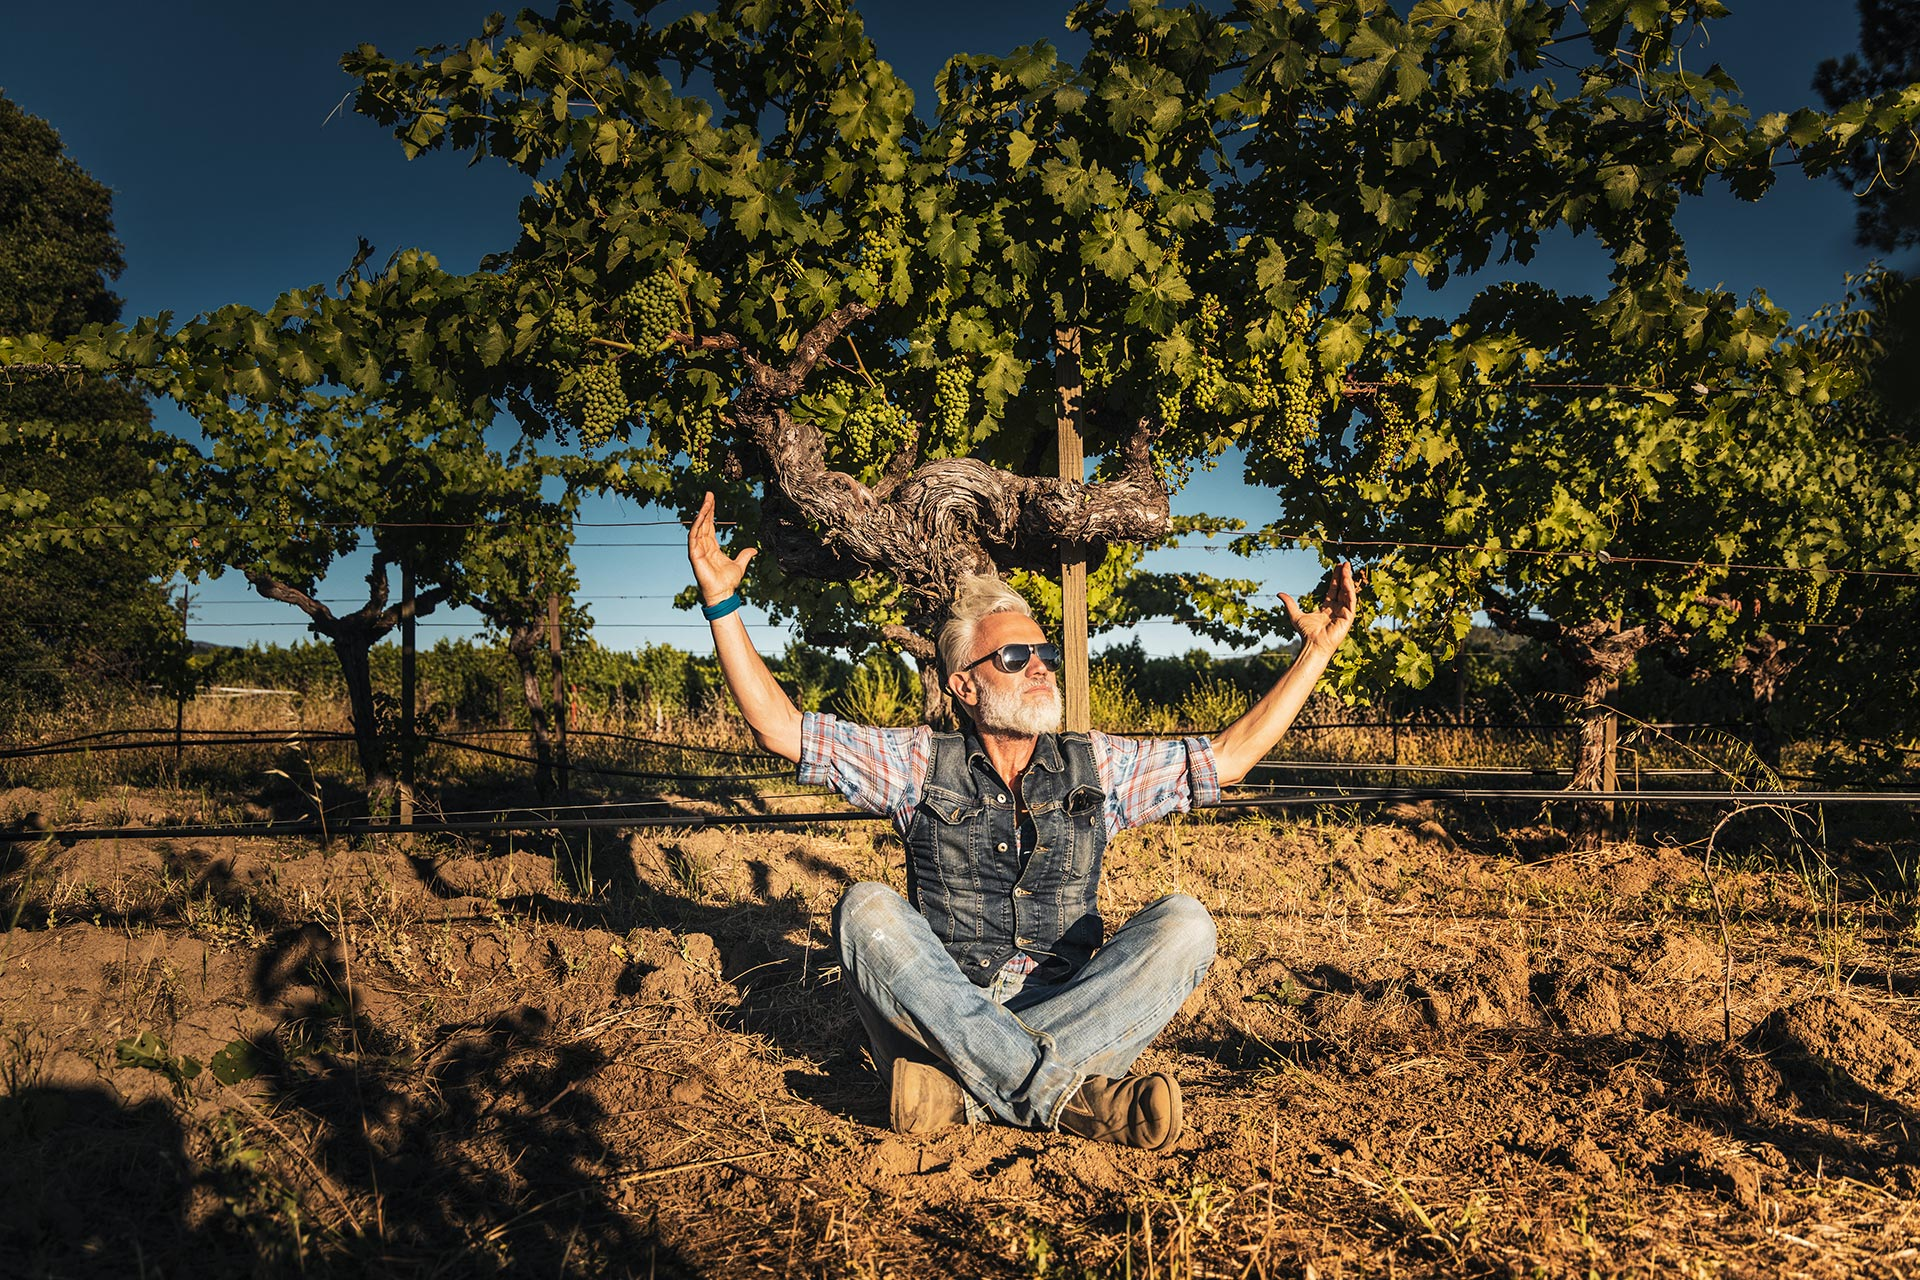 Wine Photographer: Marco Simonit Master of pruning in Napa Valley